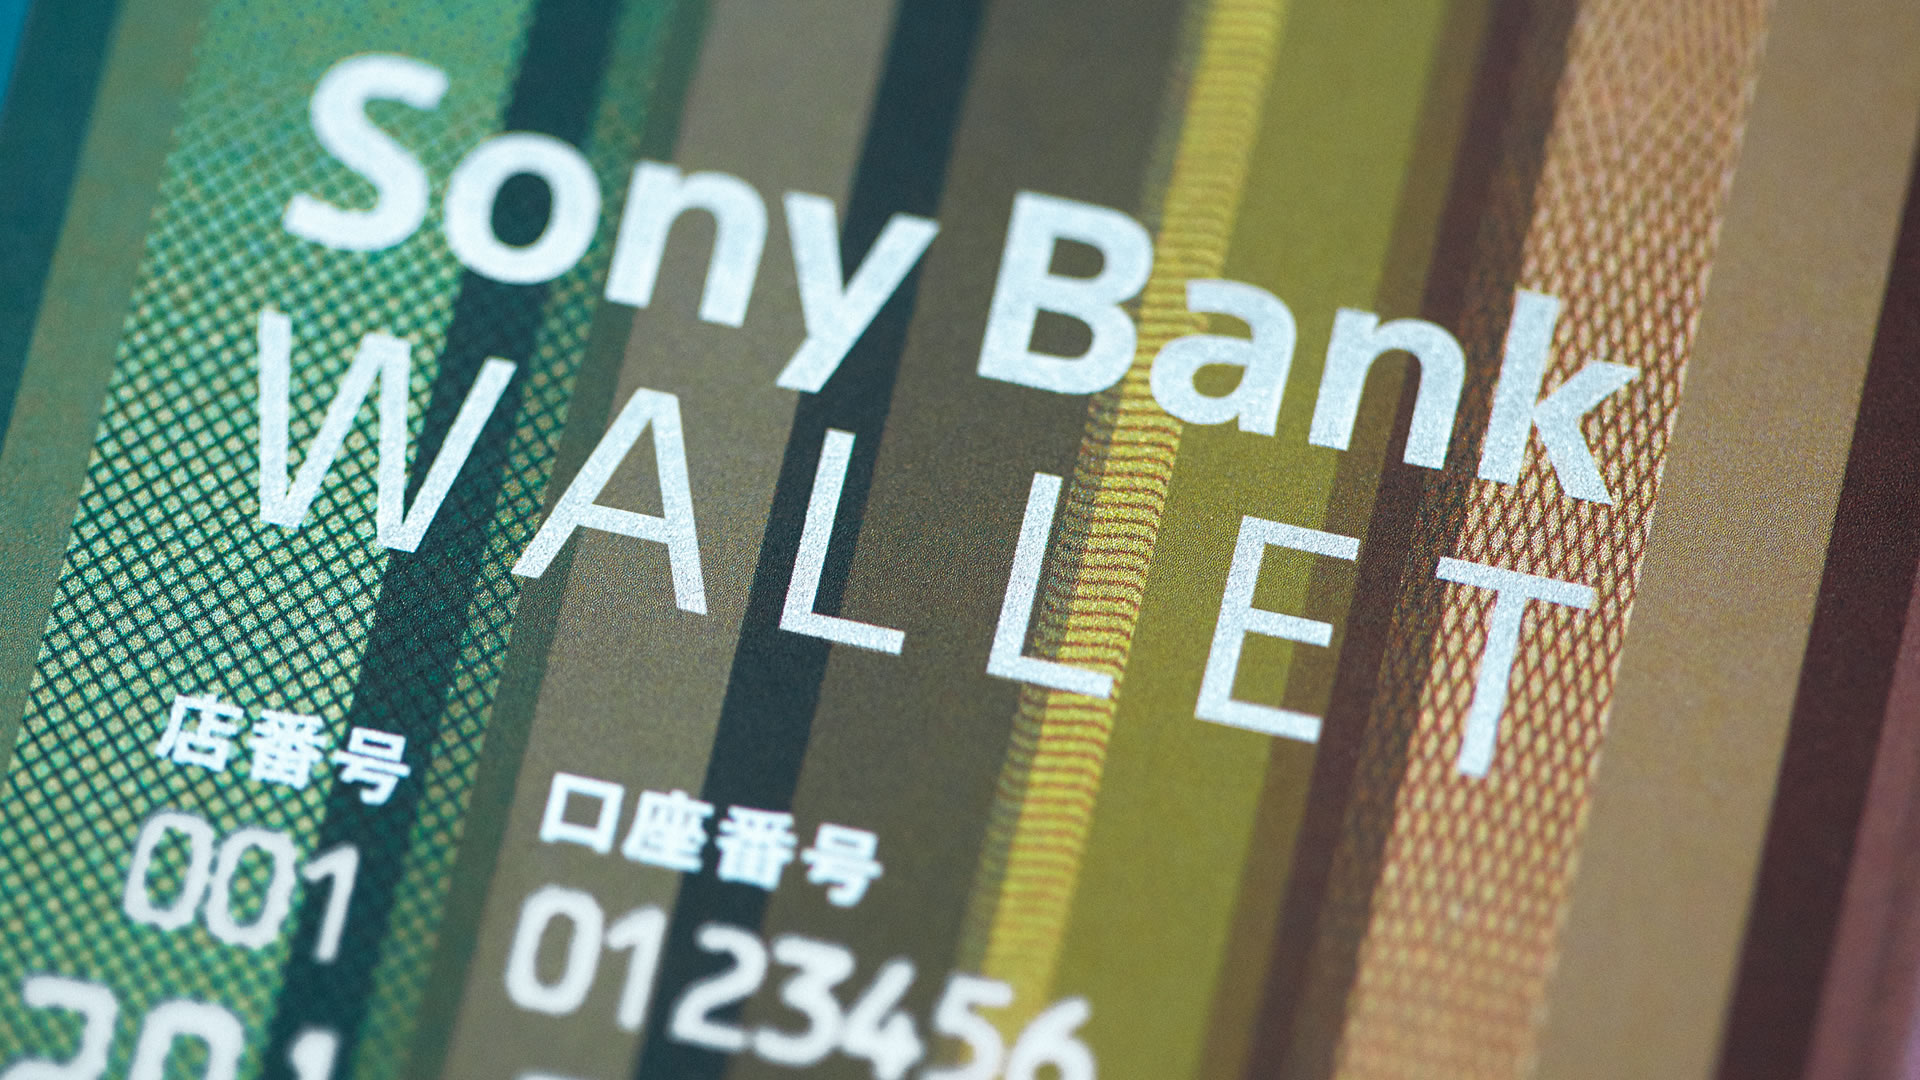 SonyBank WALLET 利用イメージ